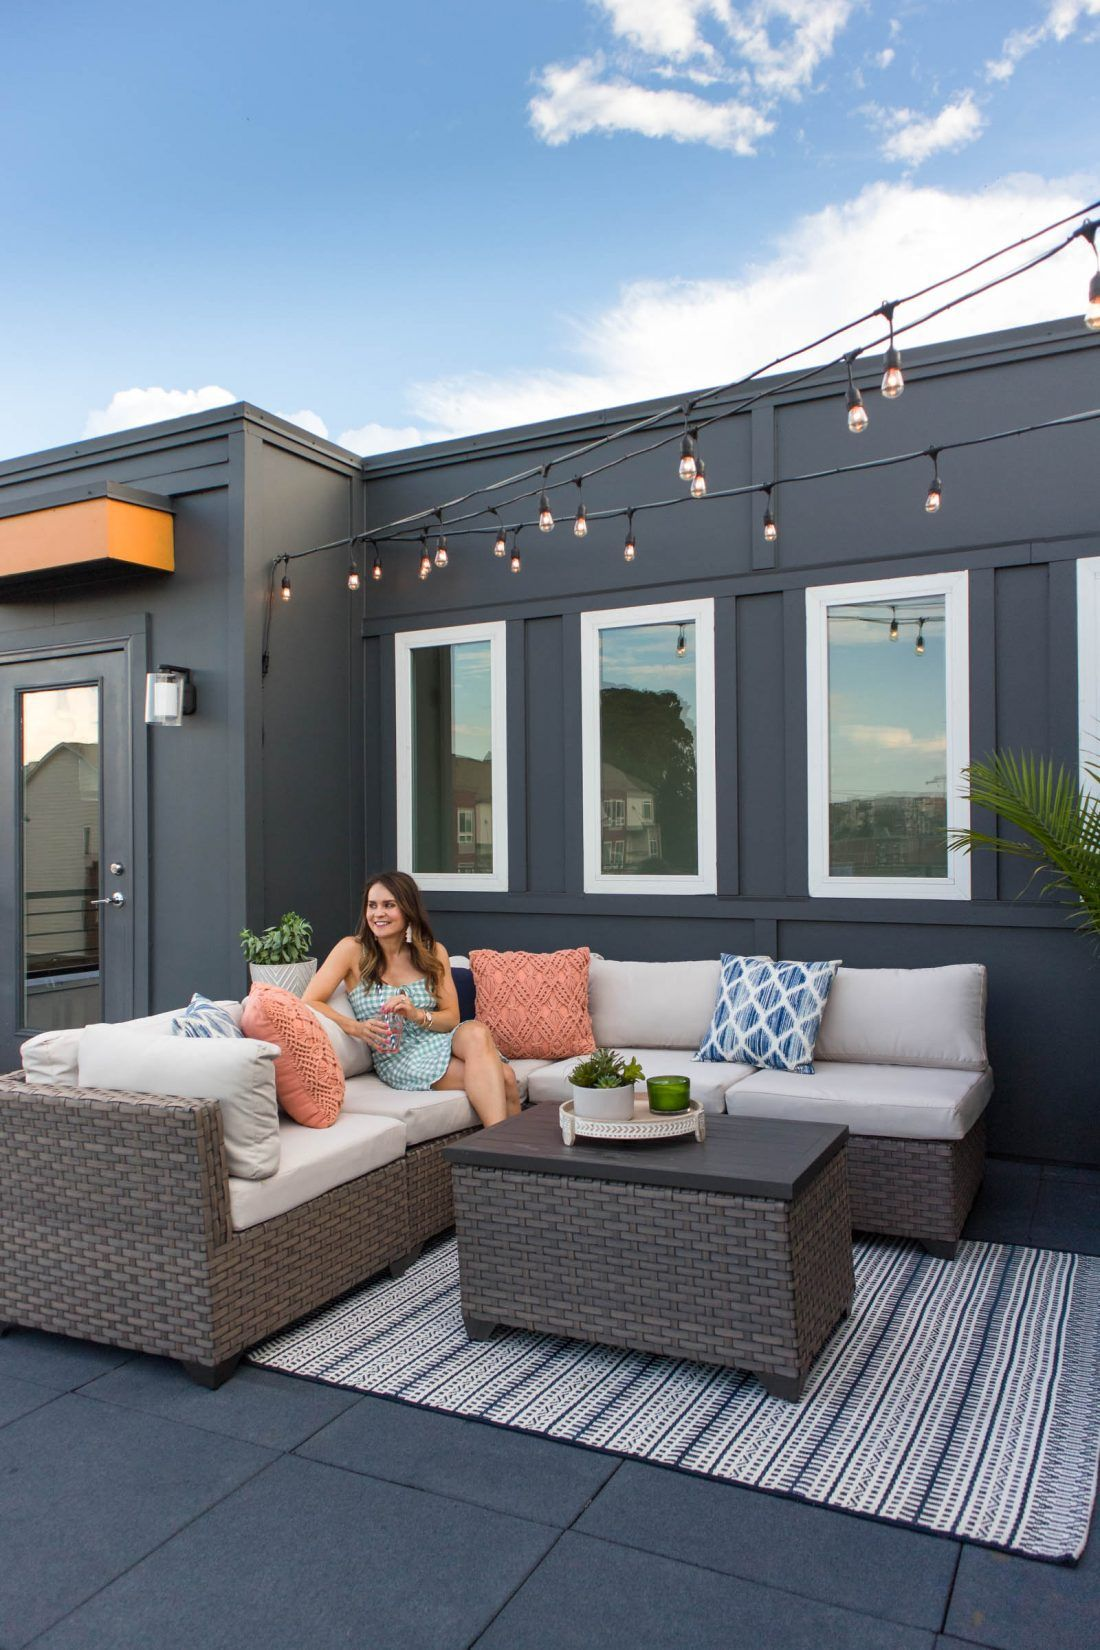 Outdoor Decor Rooftop Terrace Updates Terrace Decor Rooftop